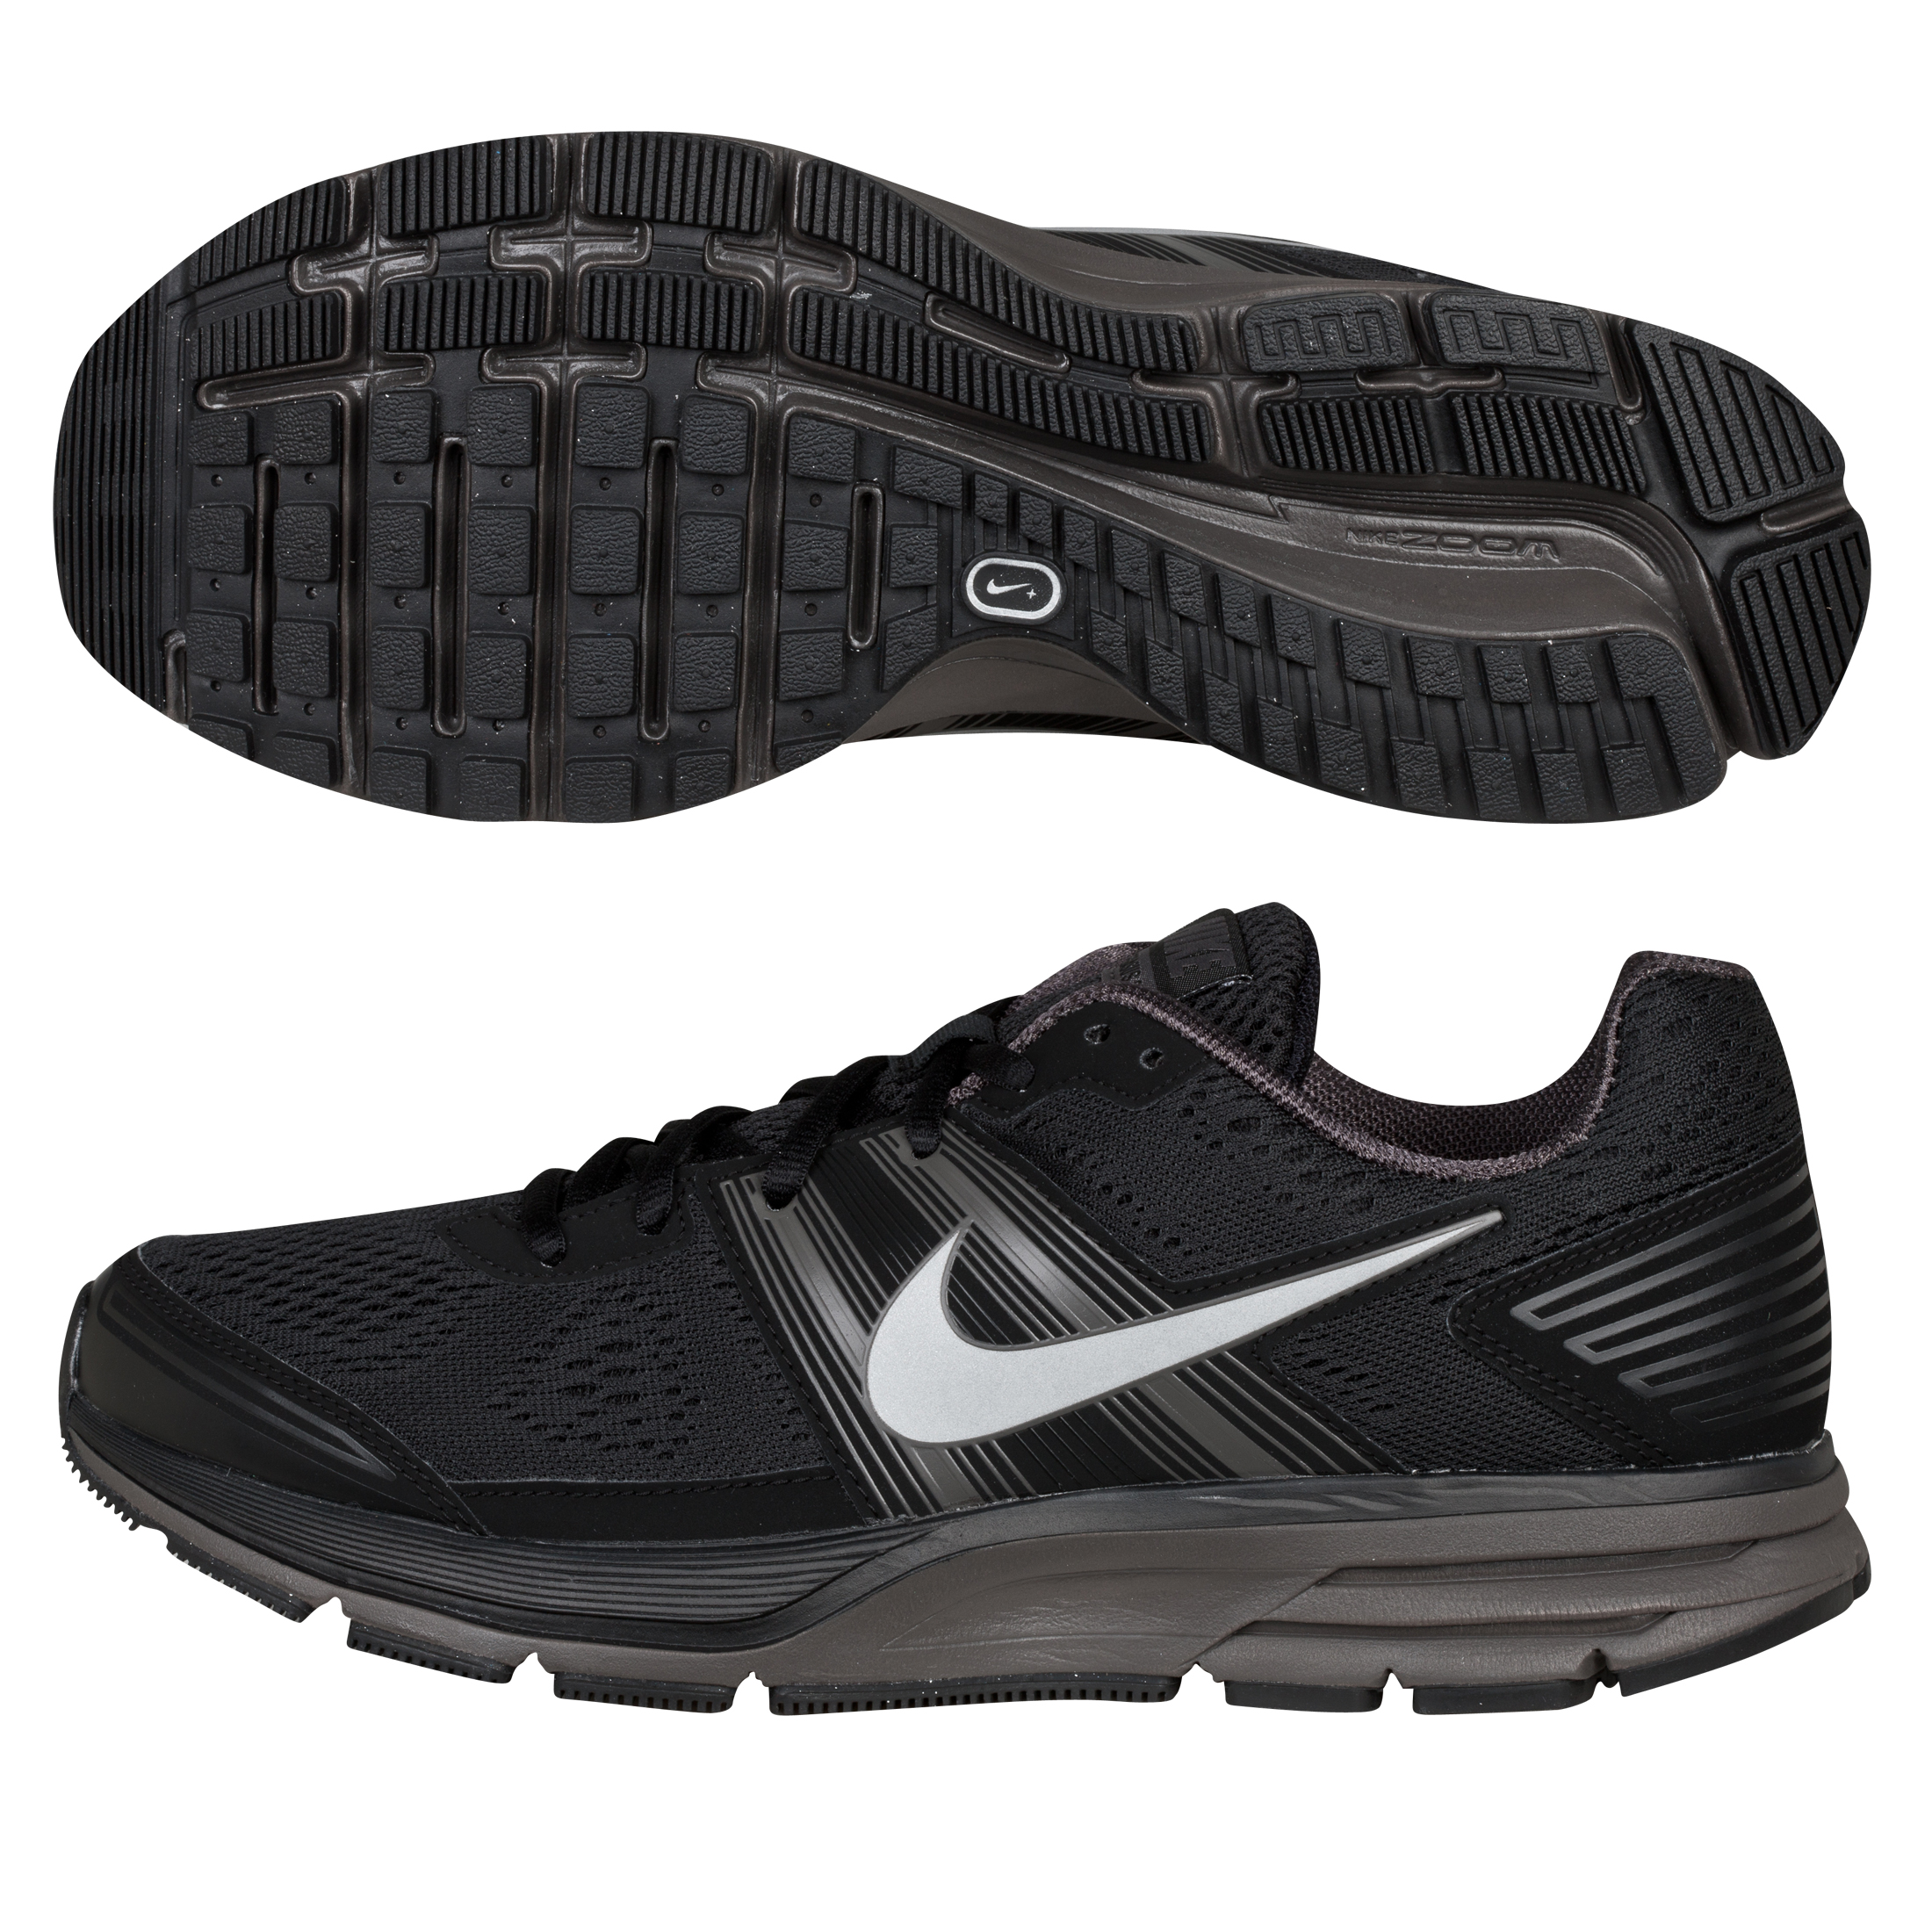 Nike Air Pegasus+ 29 Running Neutral Trainer - Black